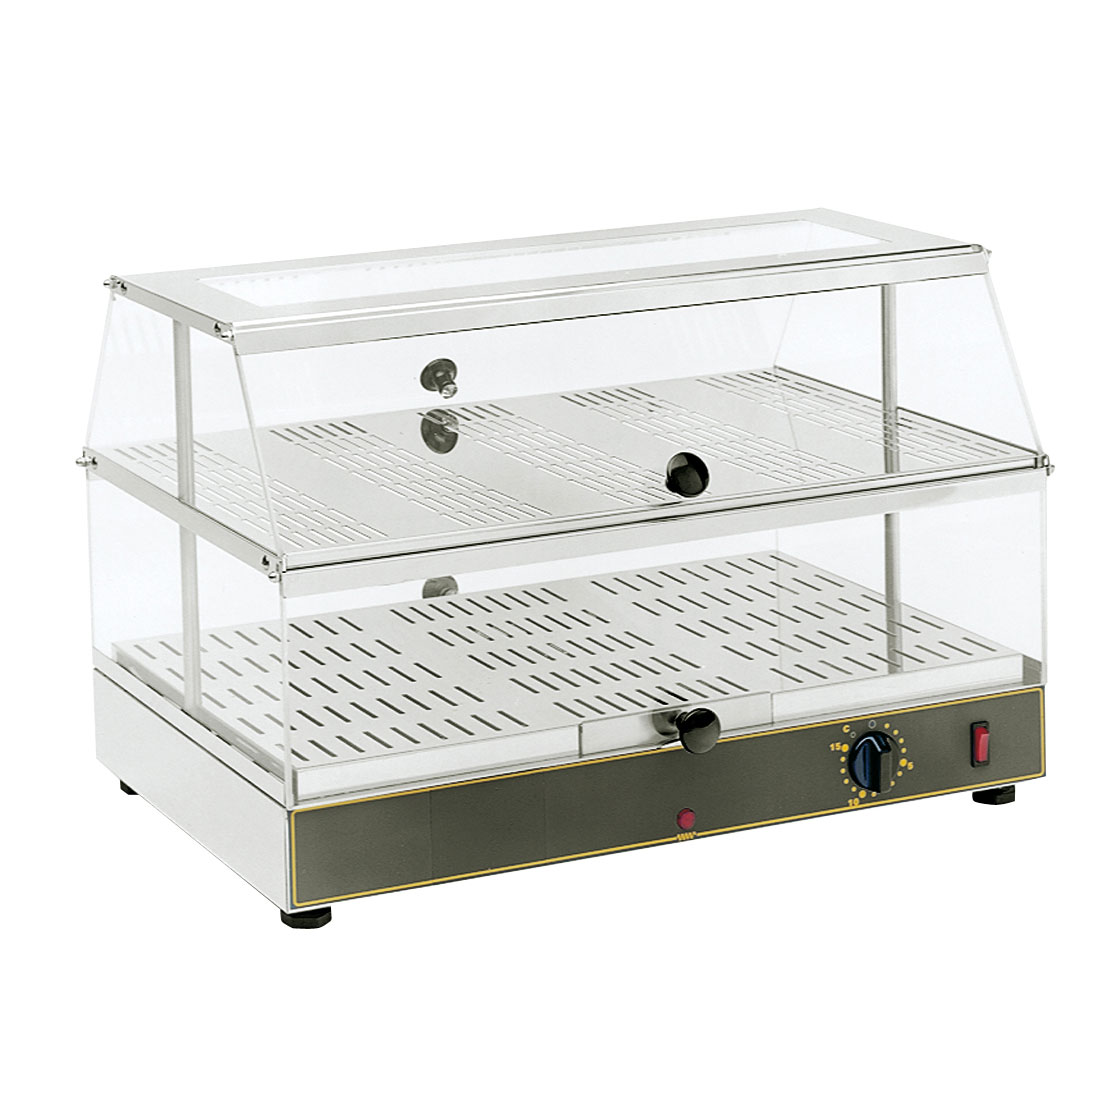 Equipex WD-200 Countertop 2-Shelf  Plexiglass Display Warmer w/ Lift Up Doors, 120v